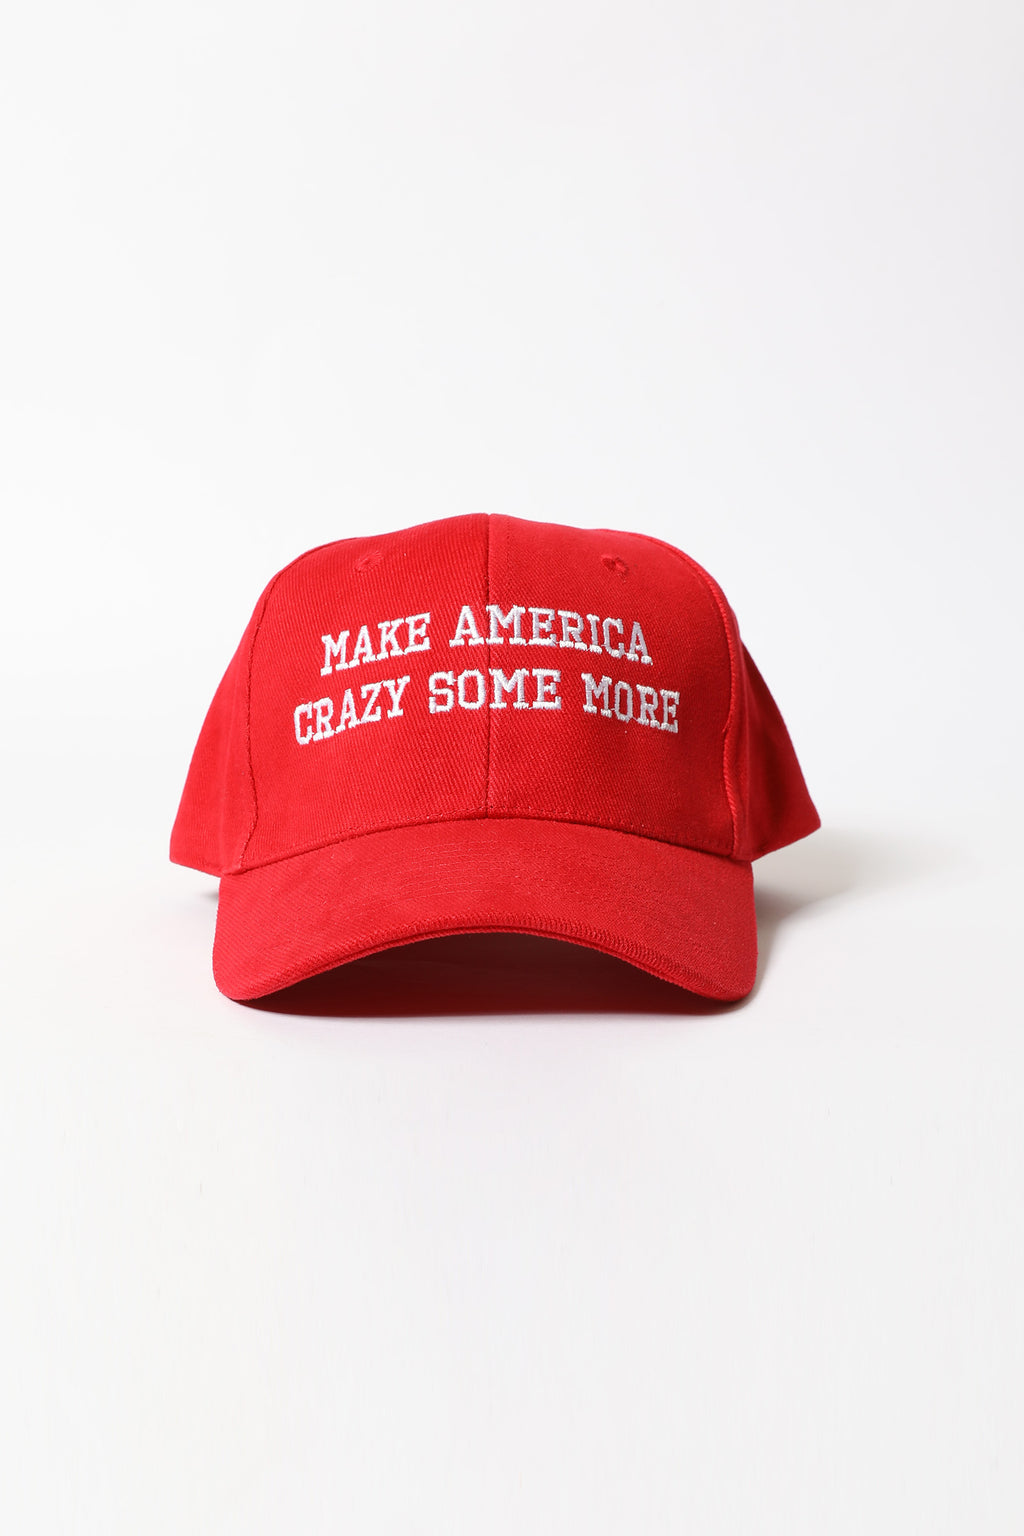 Kenny Schachter 'Make America' Baseball Cap